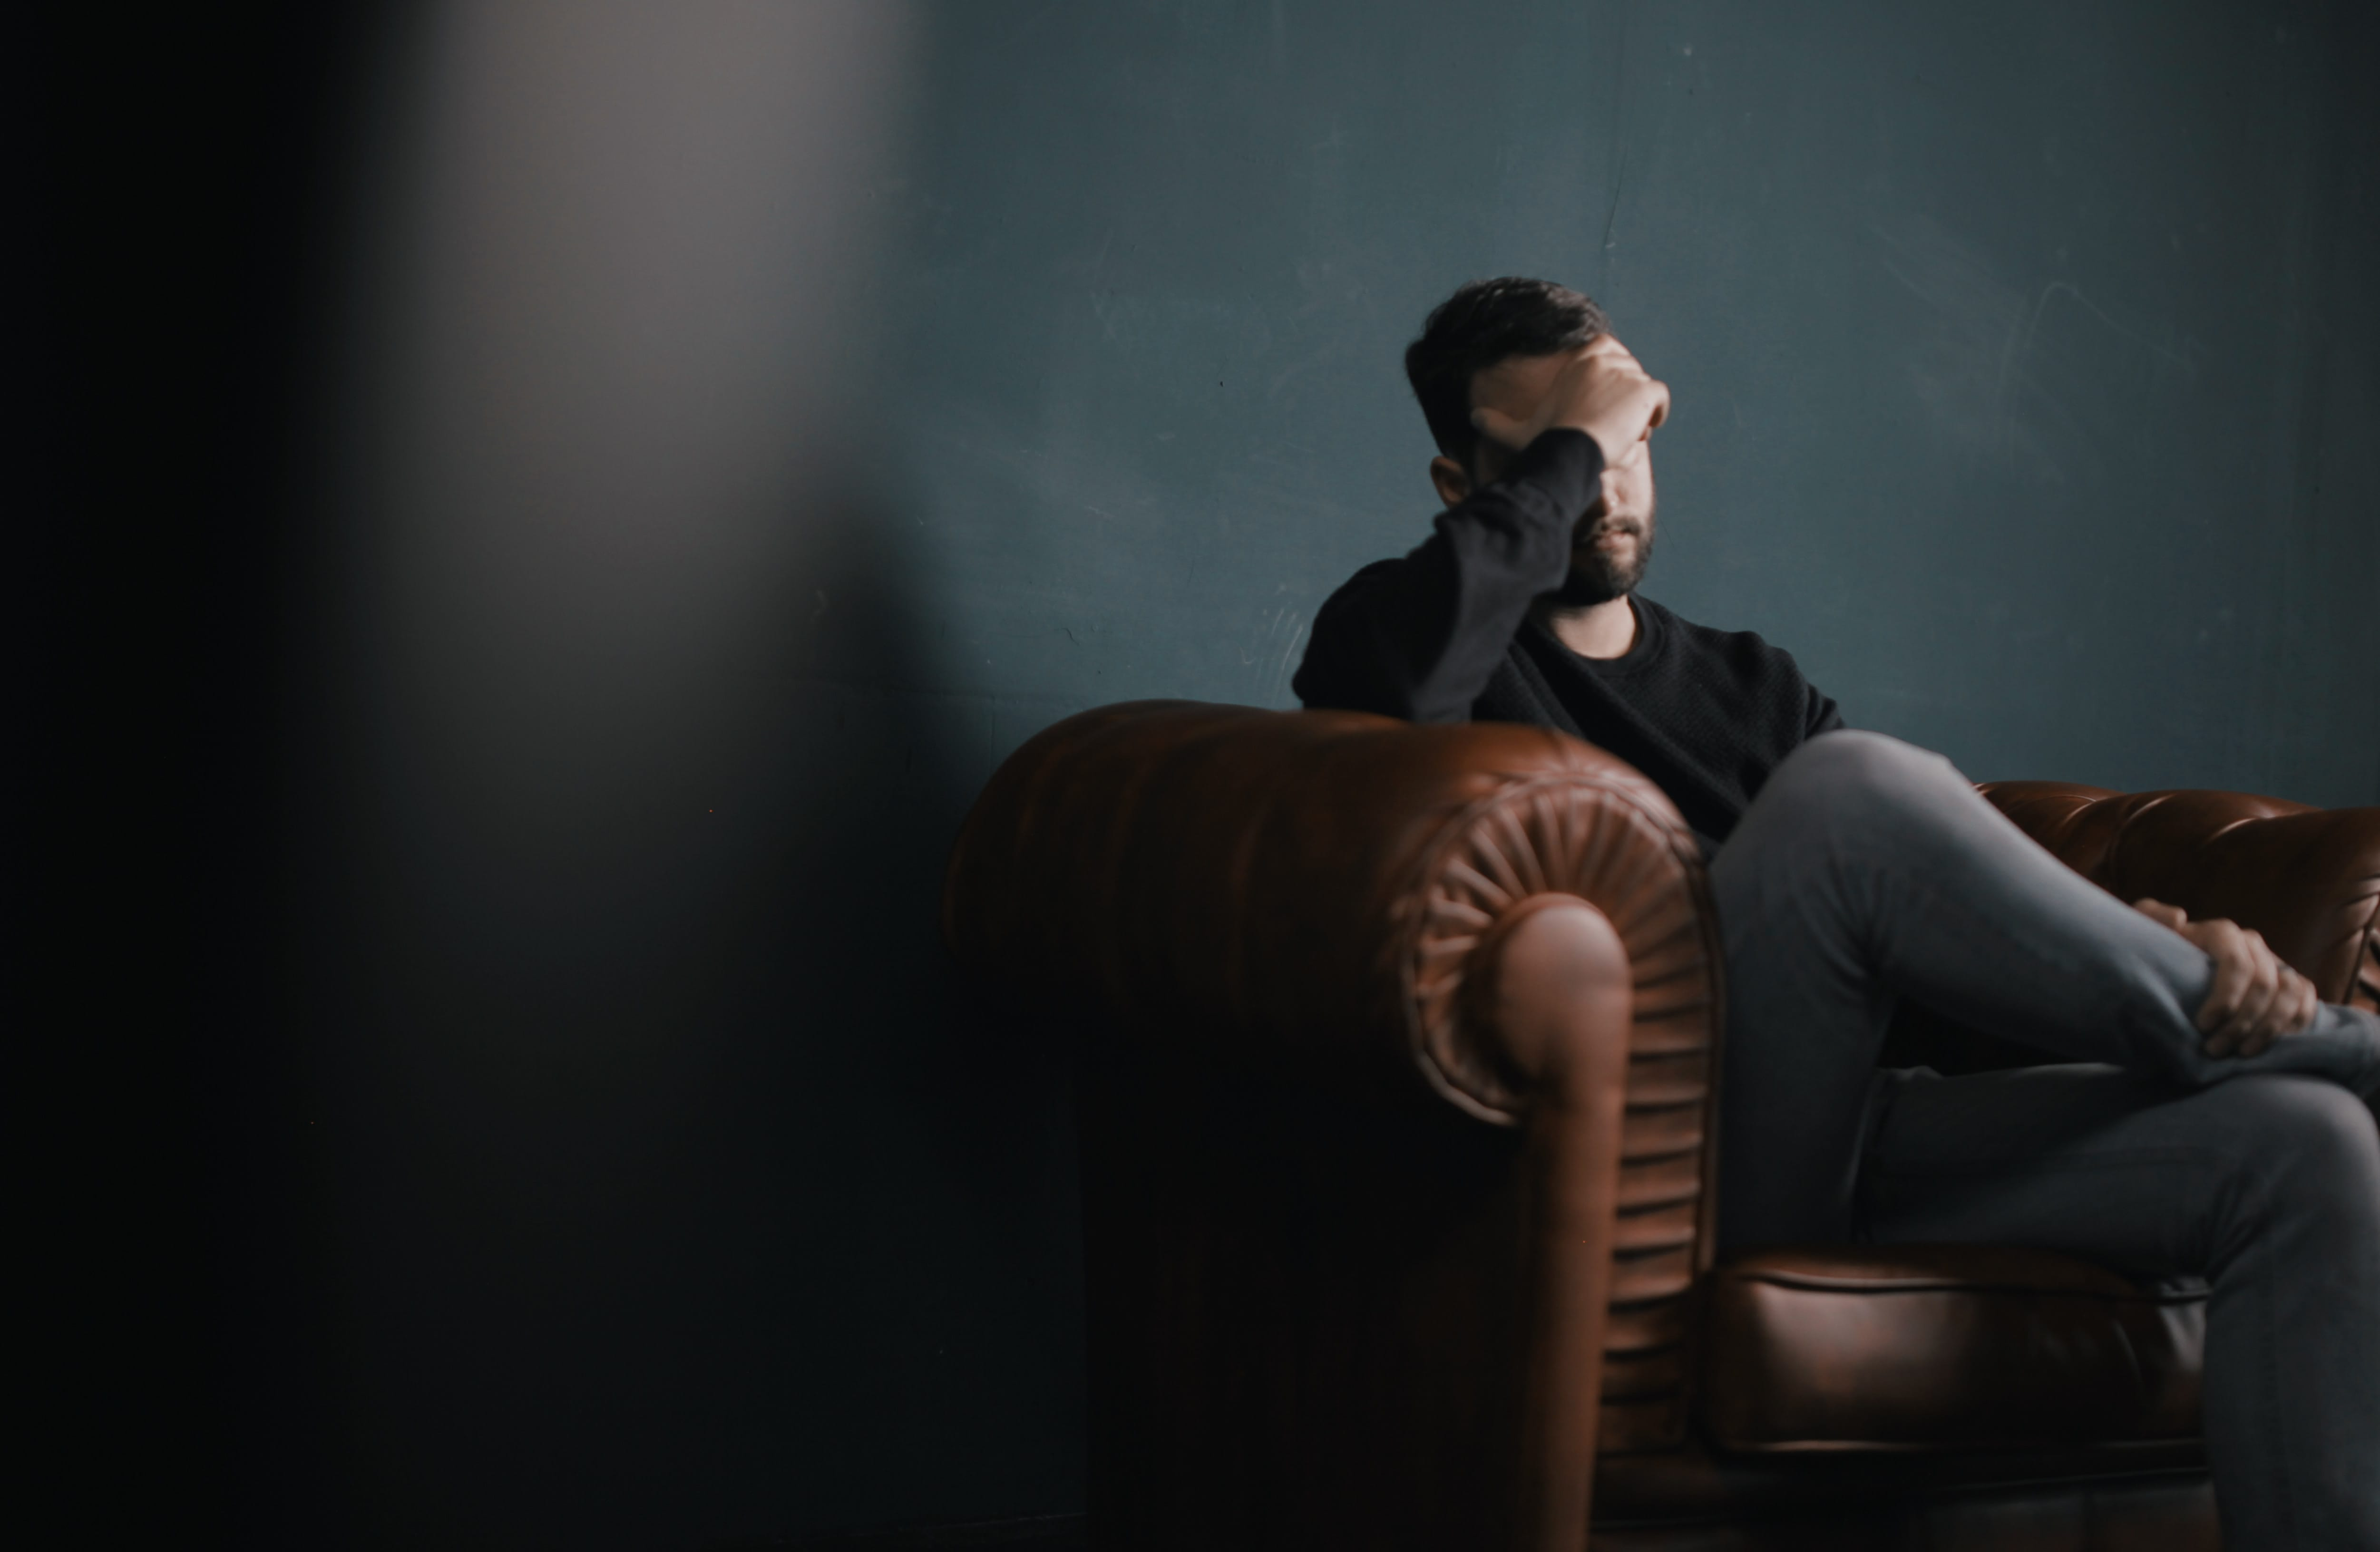 Man sitting on sofa resting his head in his hand; image by Nik Shuliahin, via Unsplash.com.